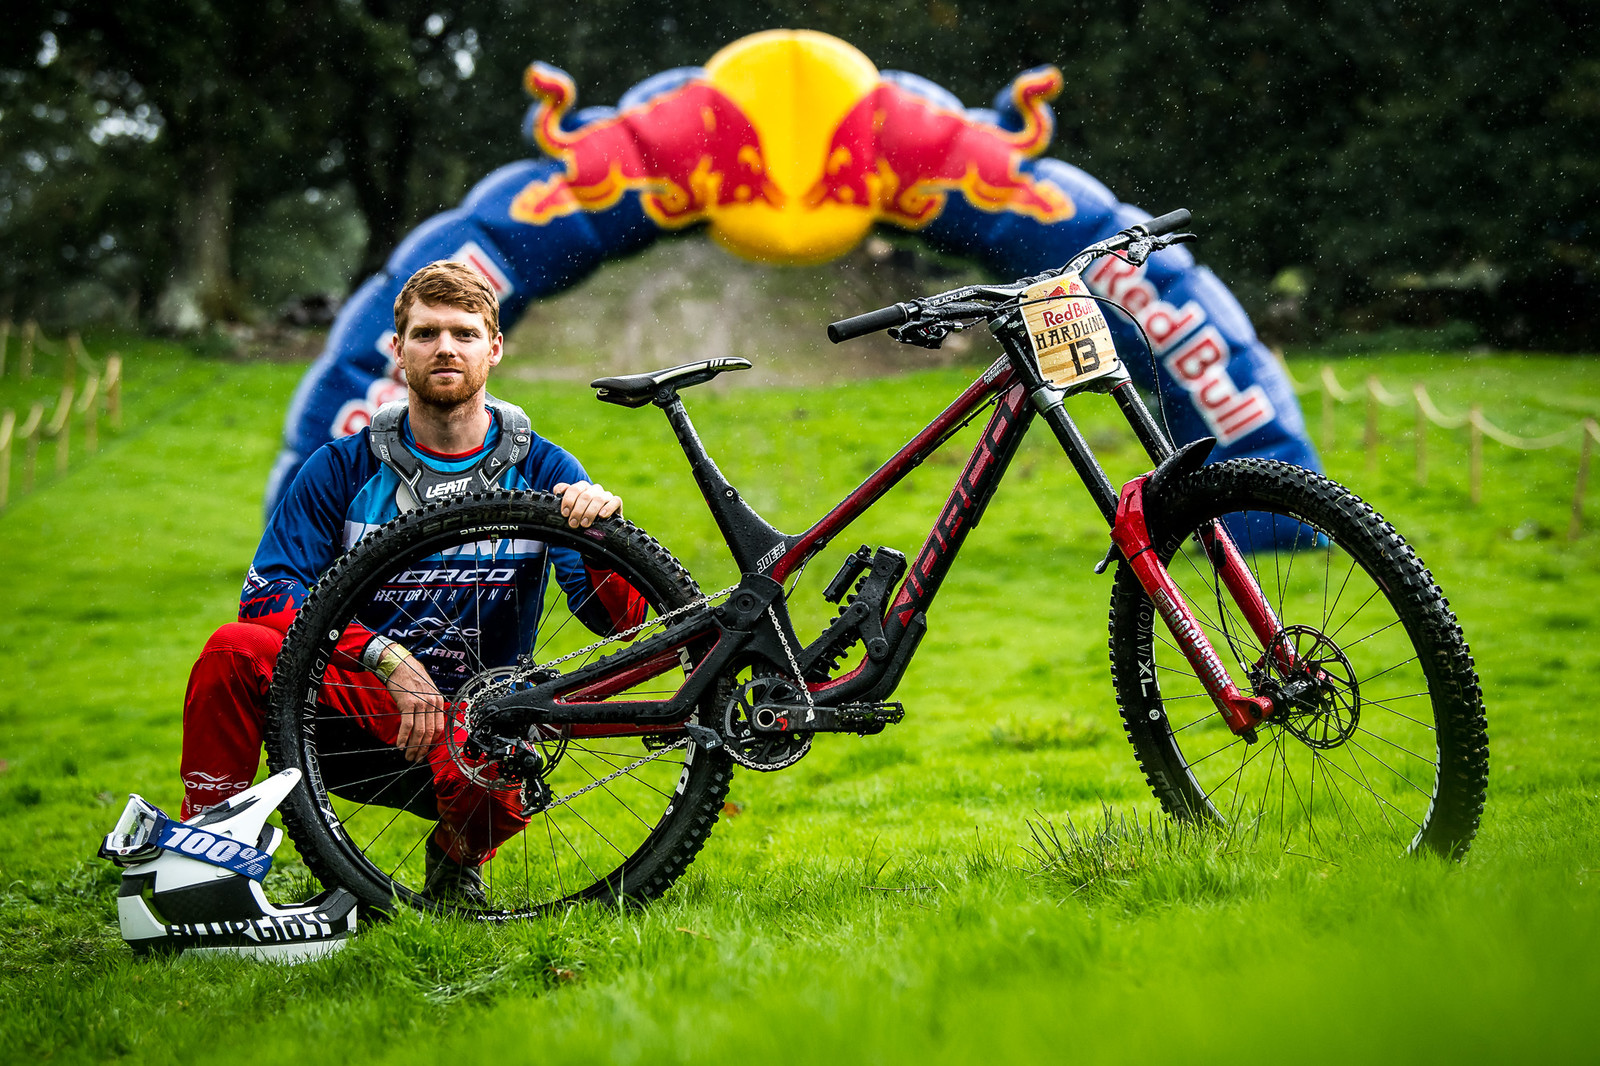 Joe Smith and His Norco Aurum HSP - Red Bull Hardline 2018 Riders and Bikes - Mountain Biking Pictures - Vital MTB